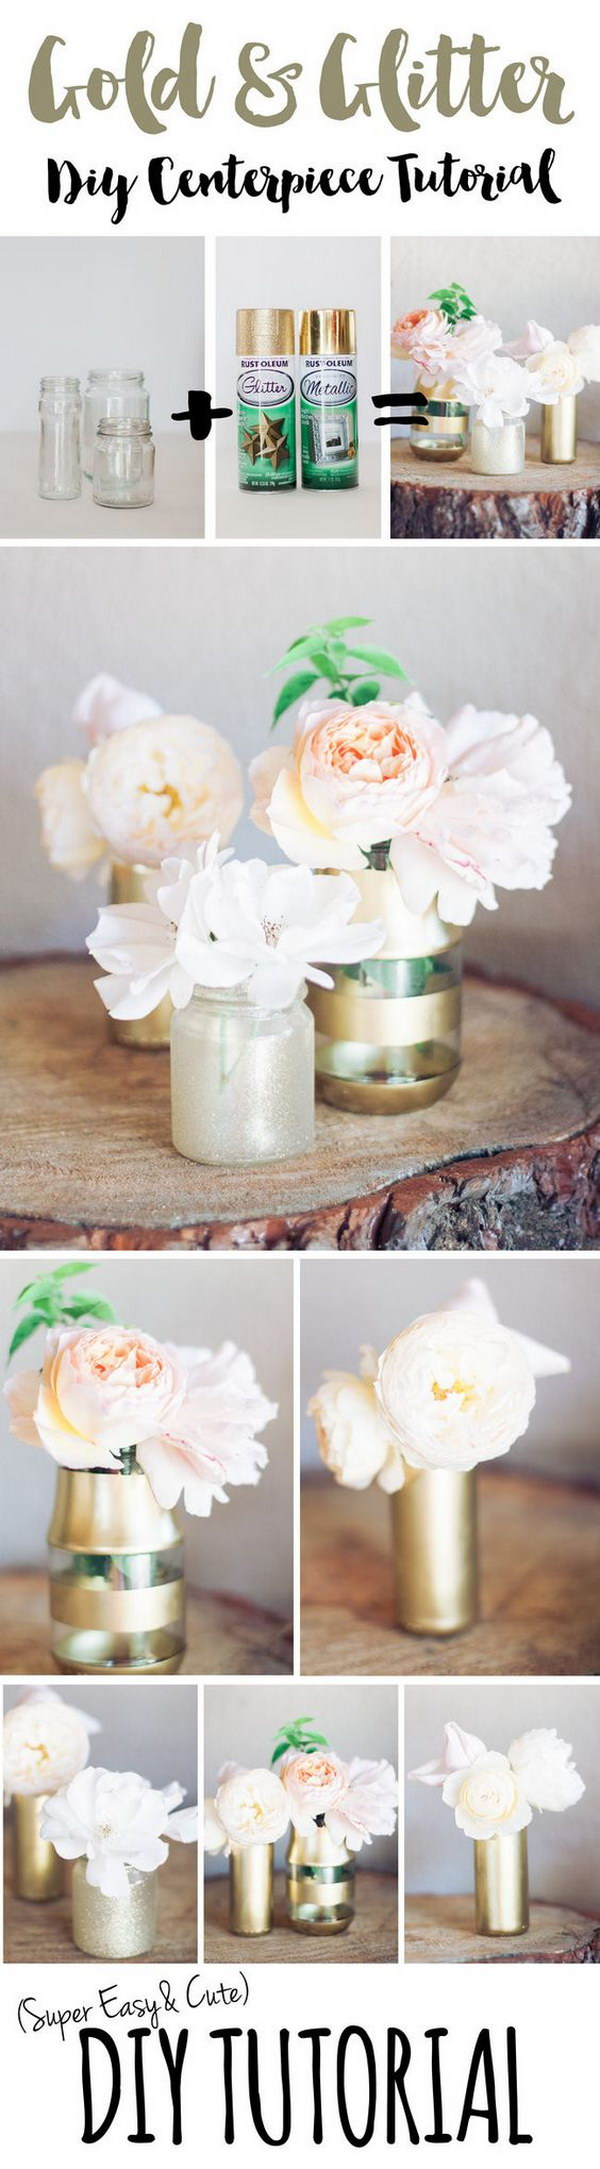 DIY Gold Glitter Bottle Vase